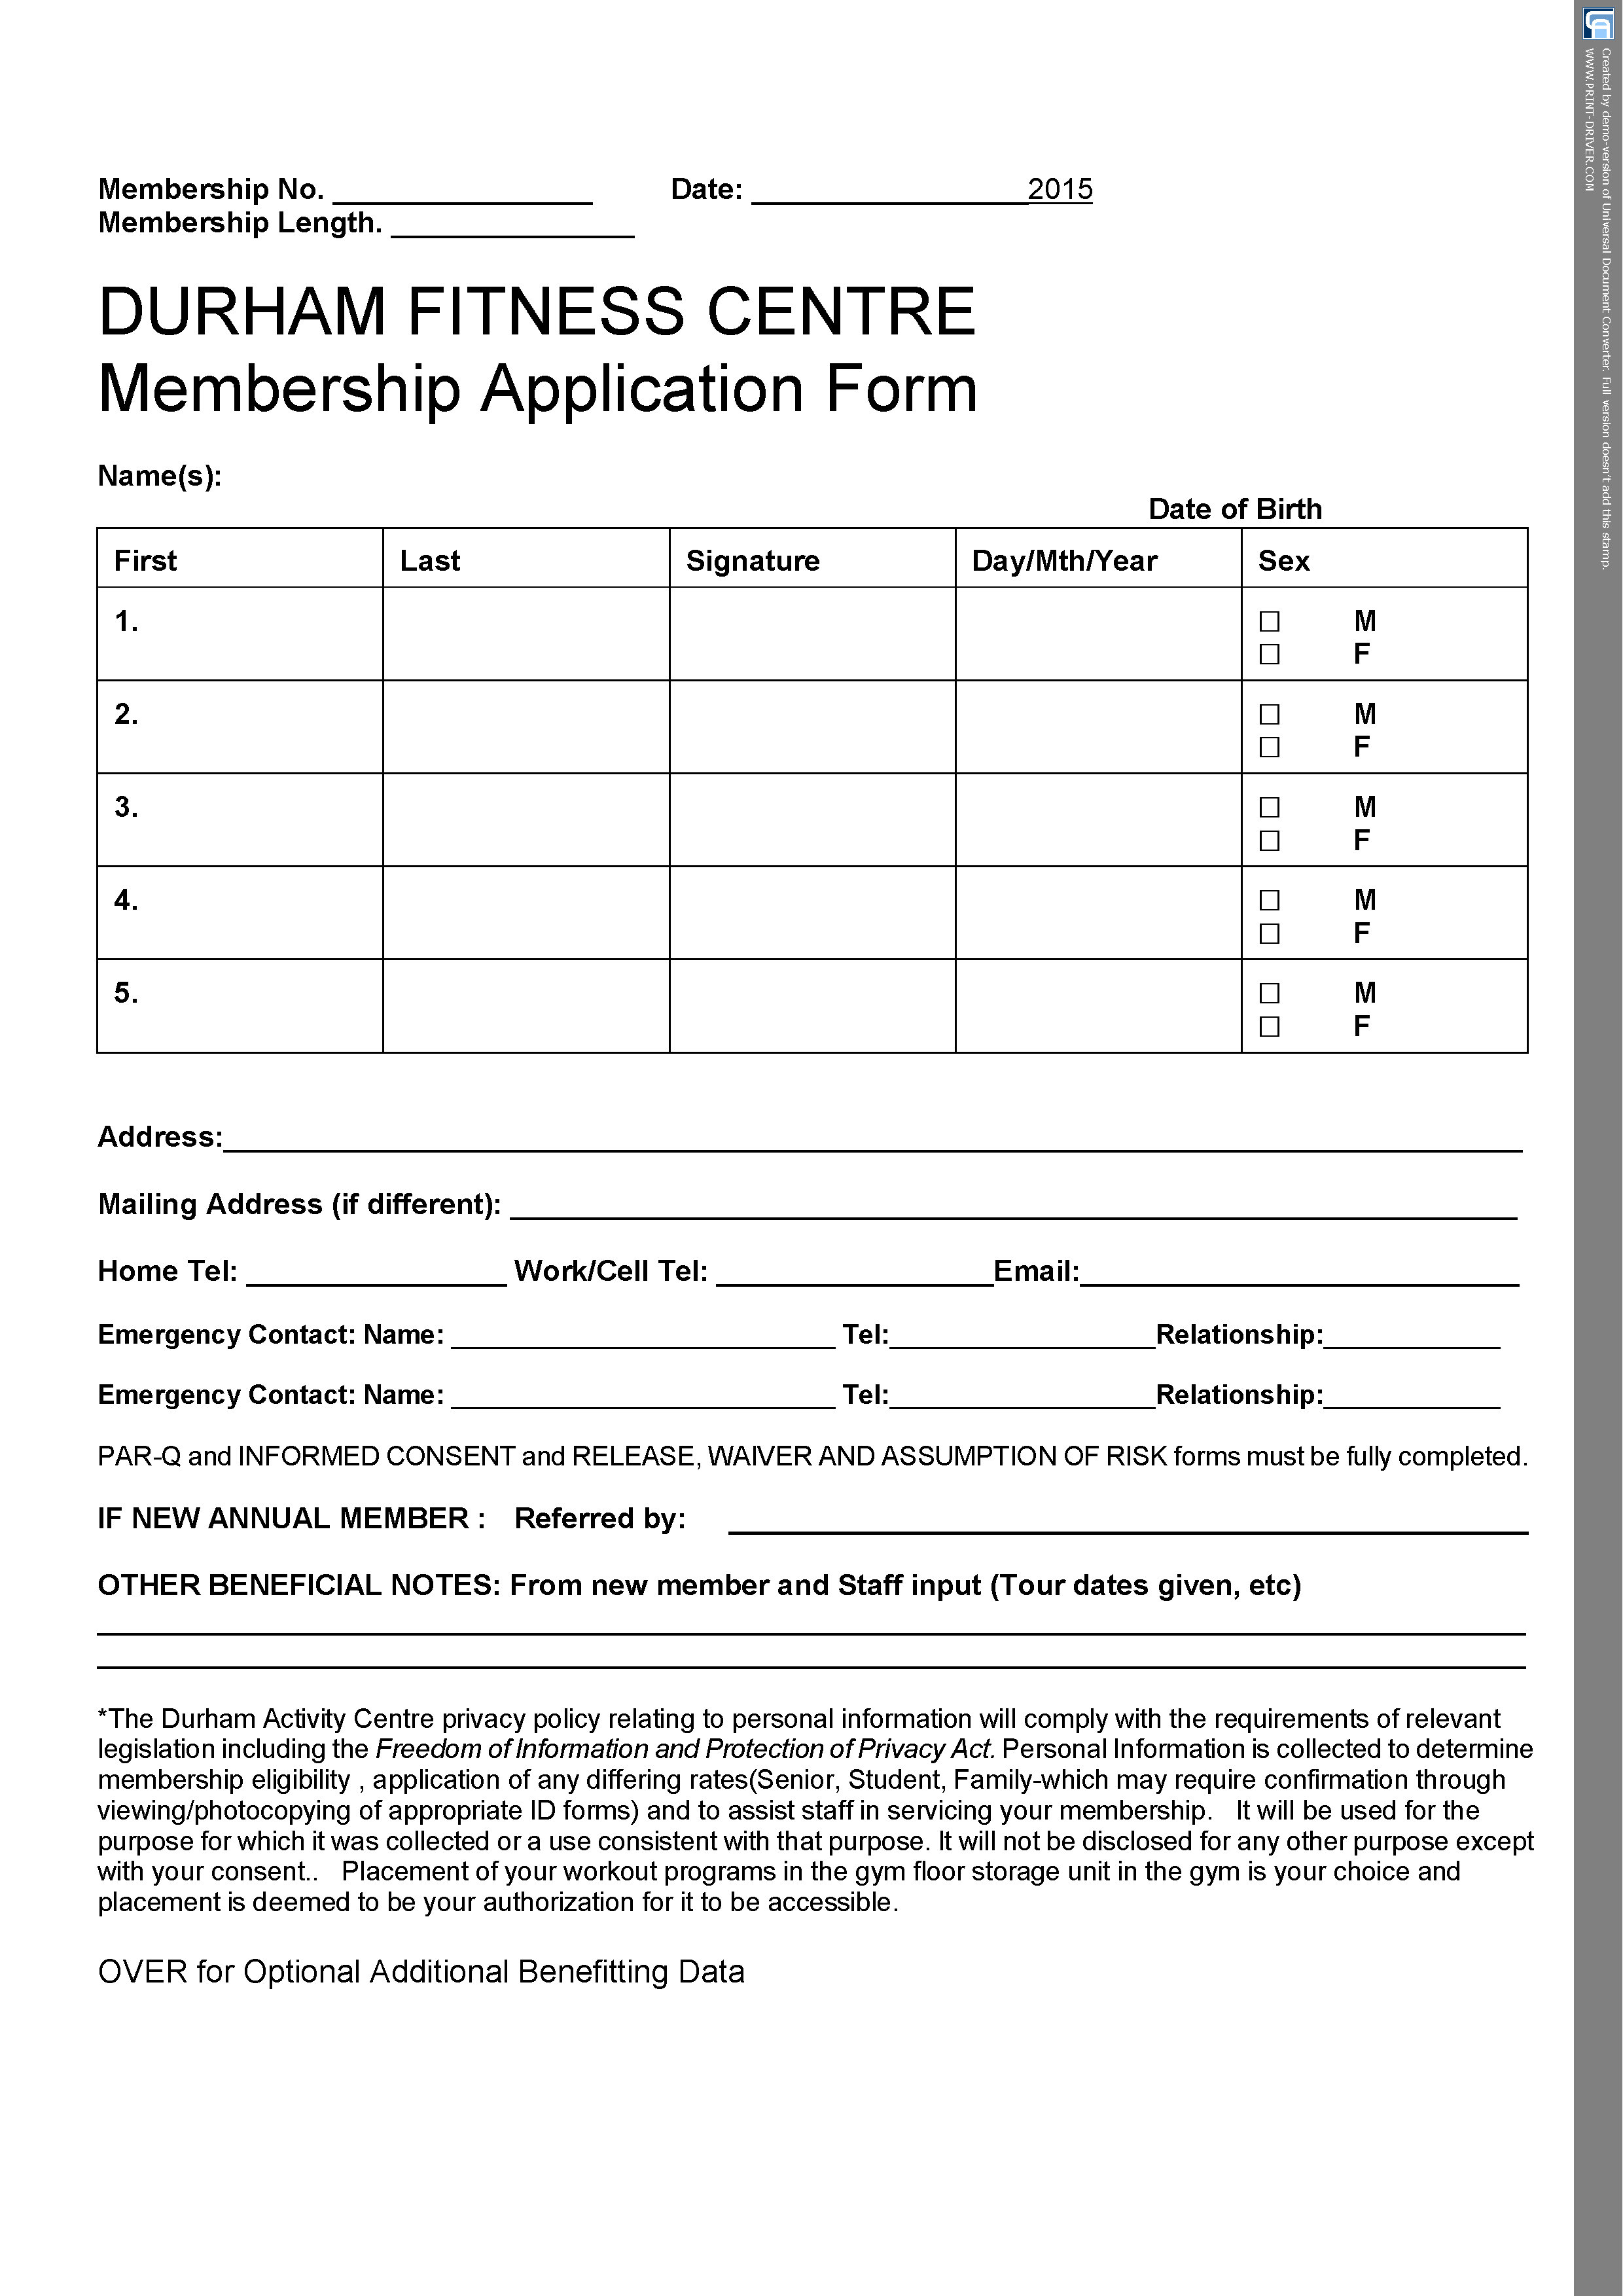 Membership Forms | Durham Fitness Centre